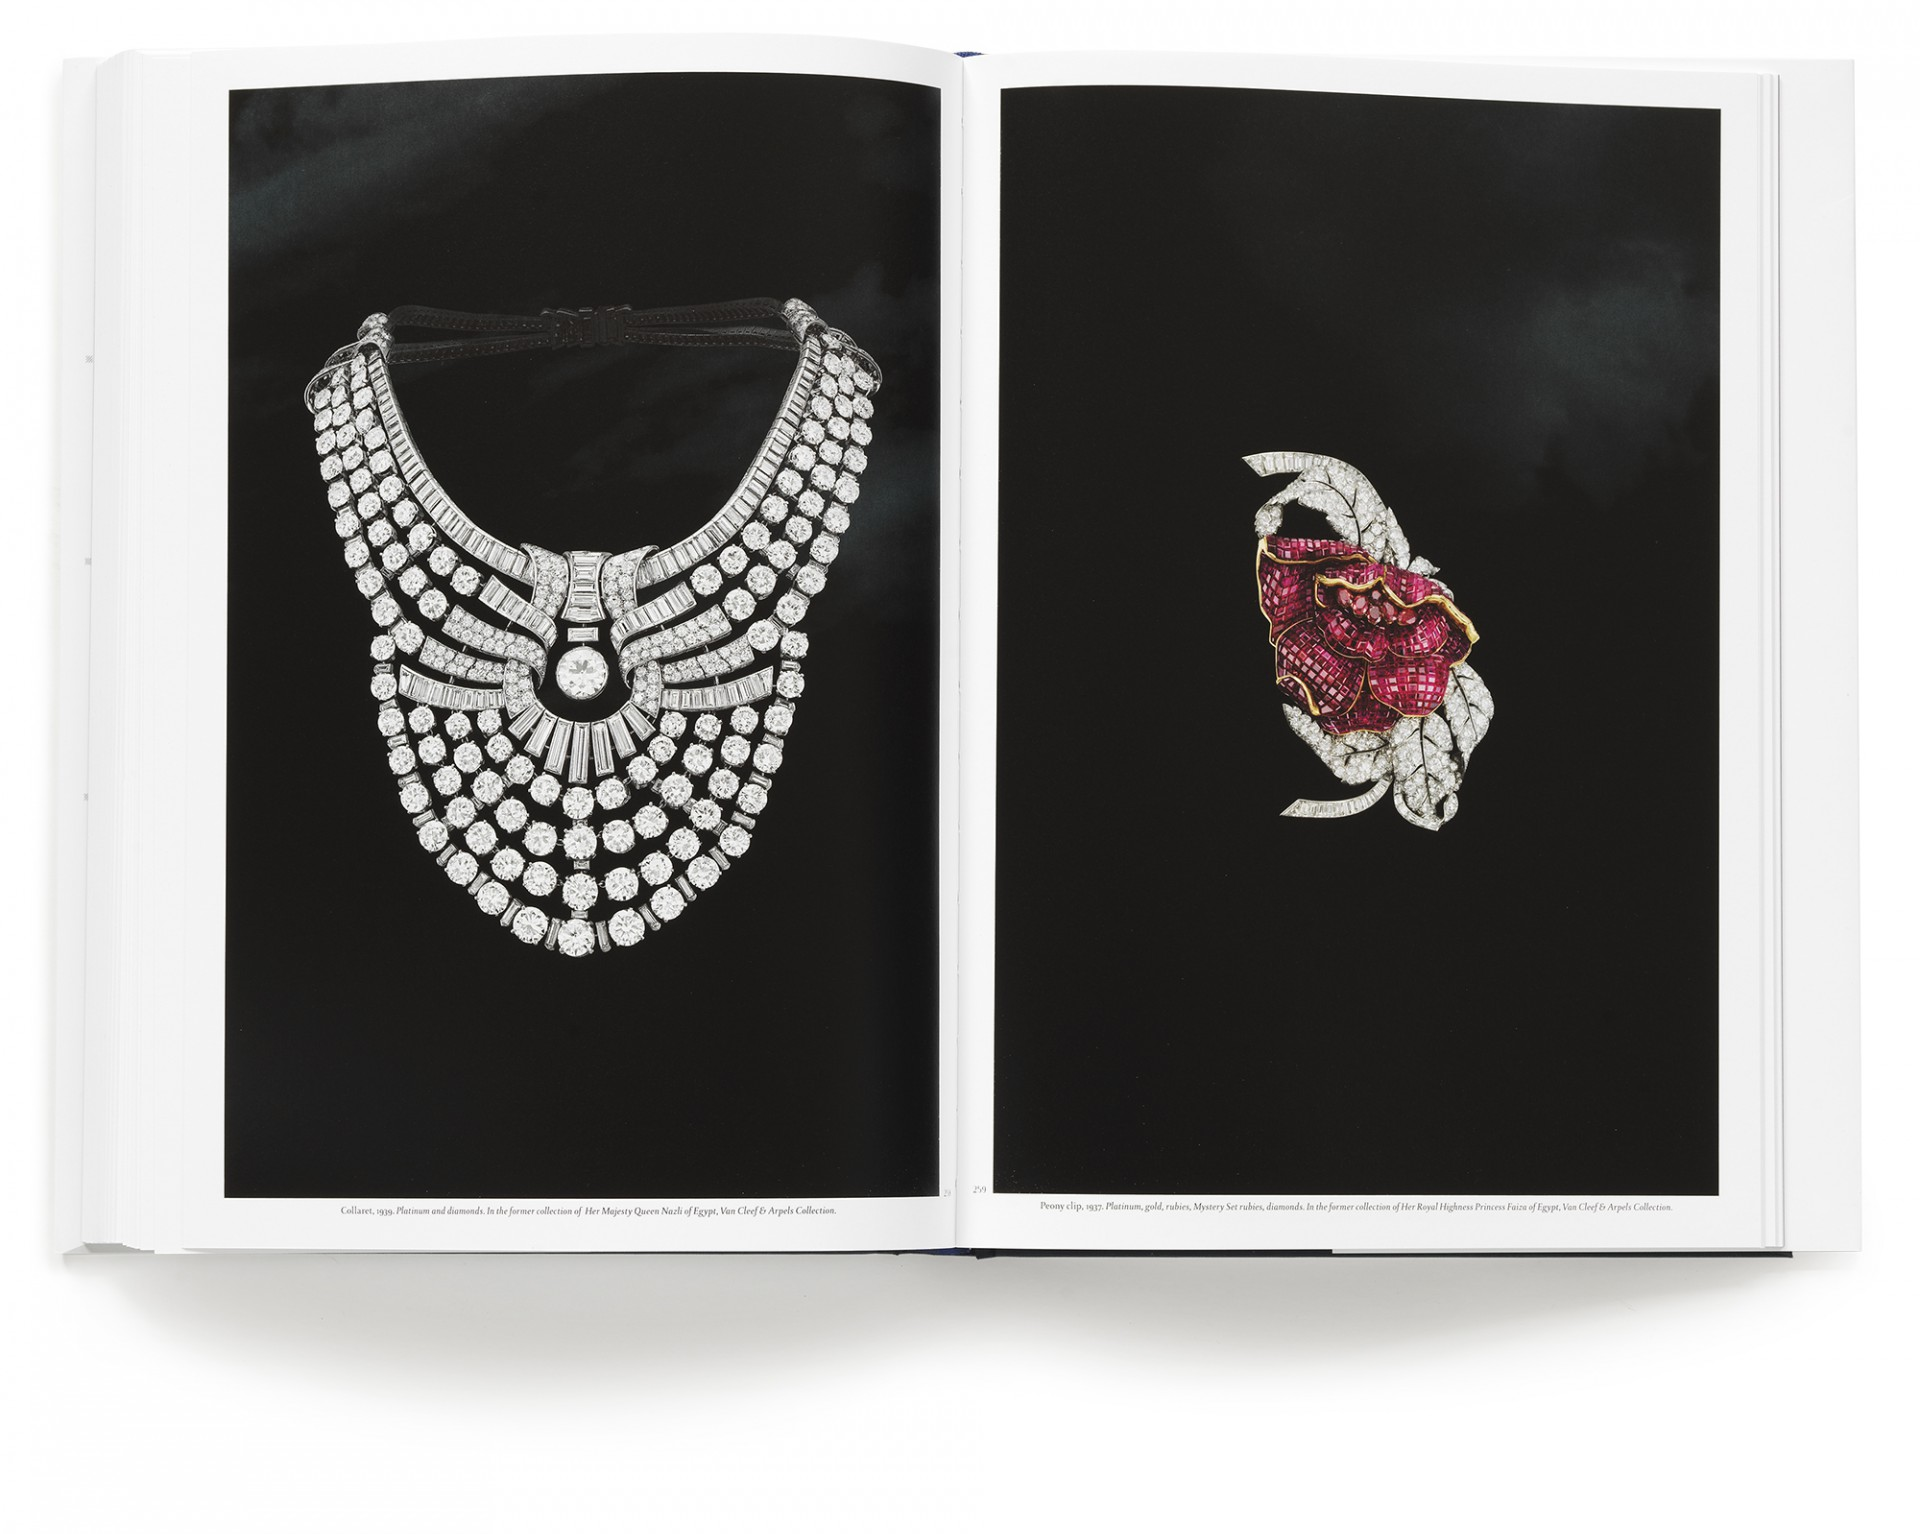 Patrick Gries Van Cleef &#038; Arpels:<br/>The art &#038; science of gems